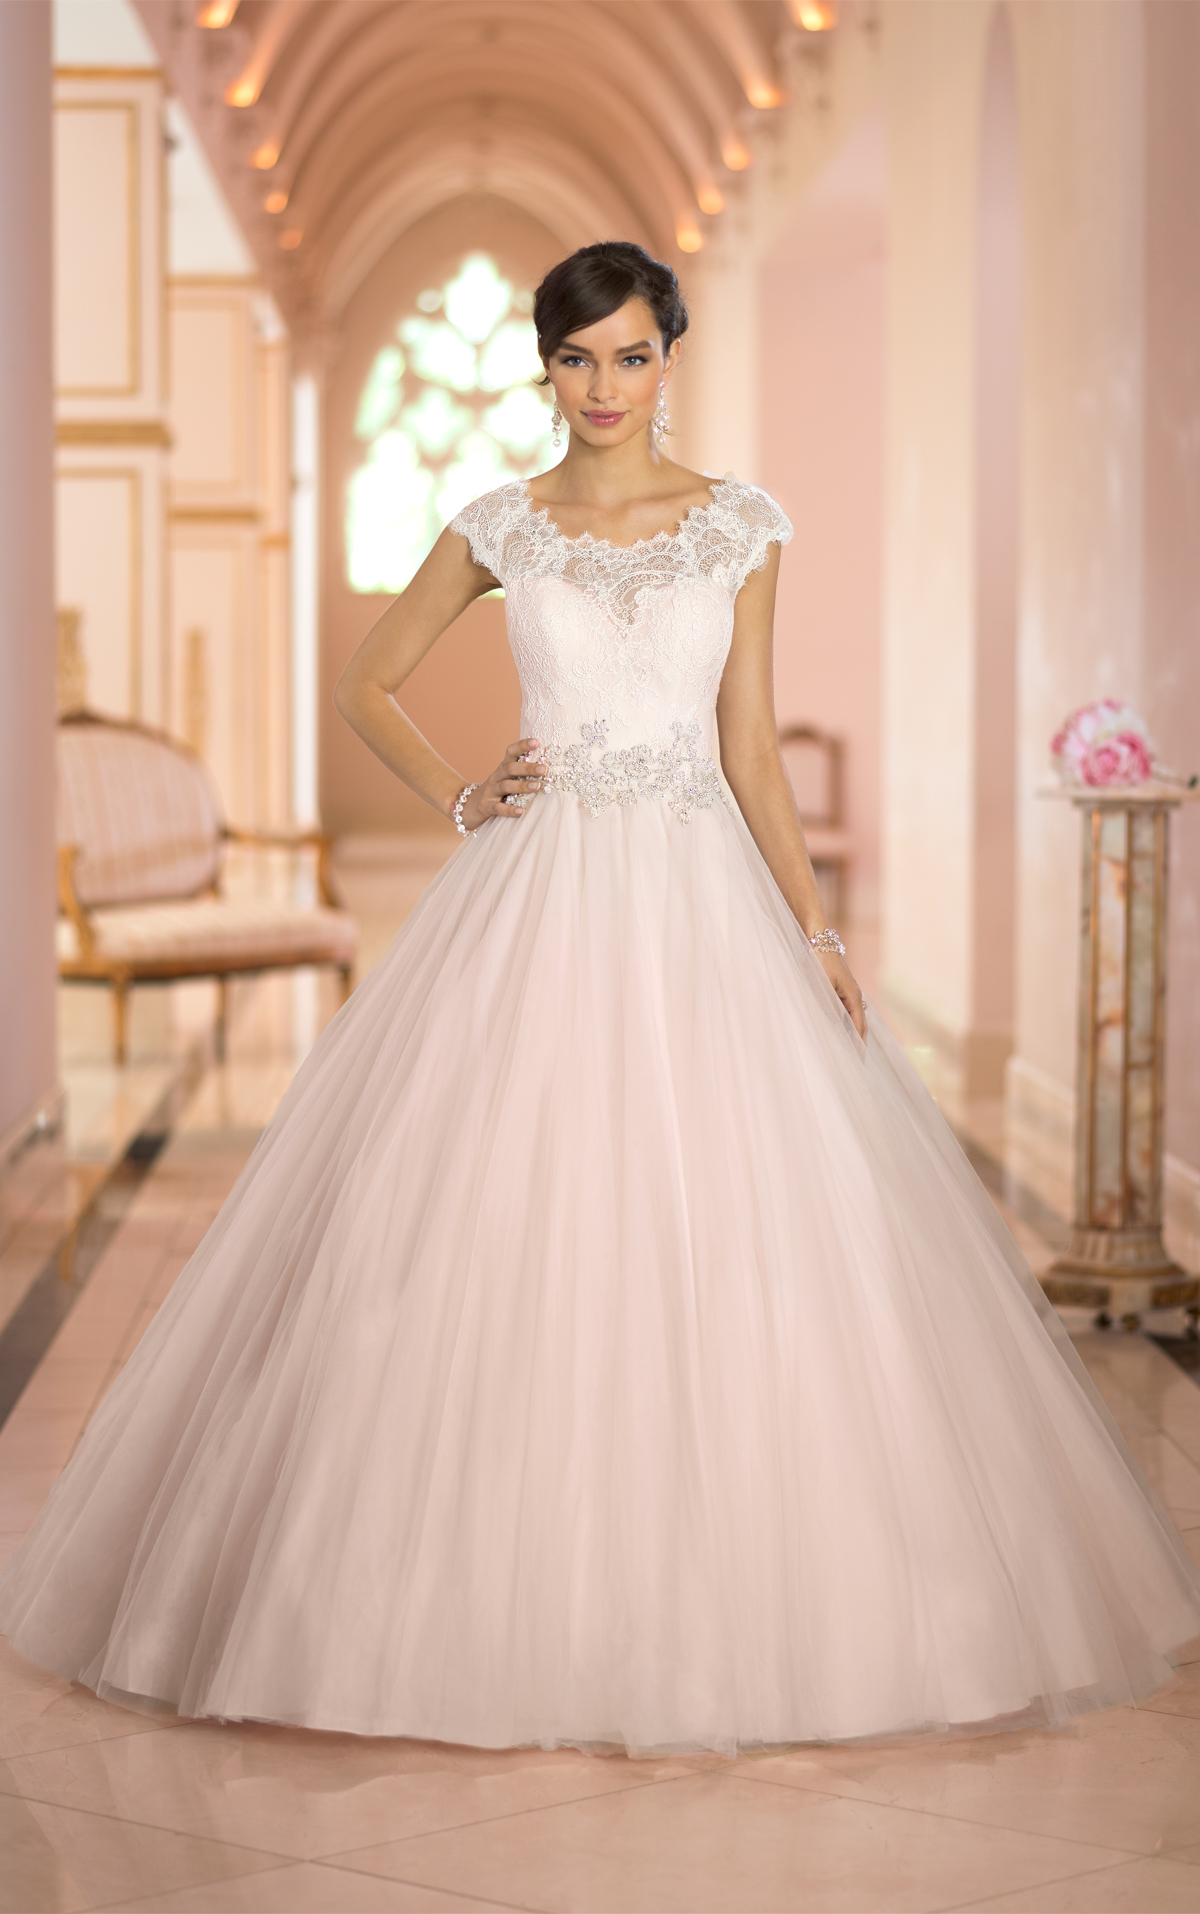 Sexy and extravagant stella york wedding dresses 2014 modwedding stella york wedding dresses 2014 19 01162014 ombrellifo Image collections